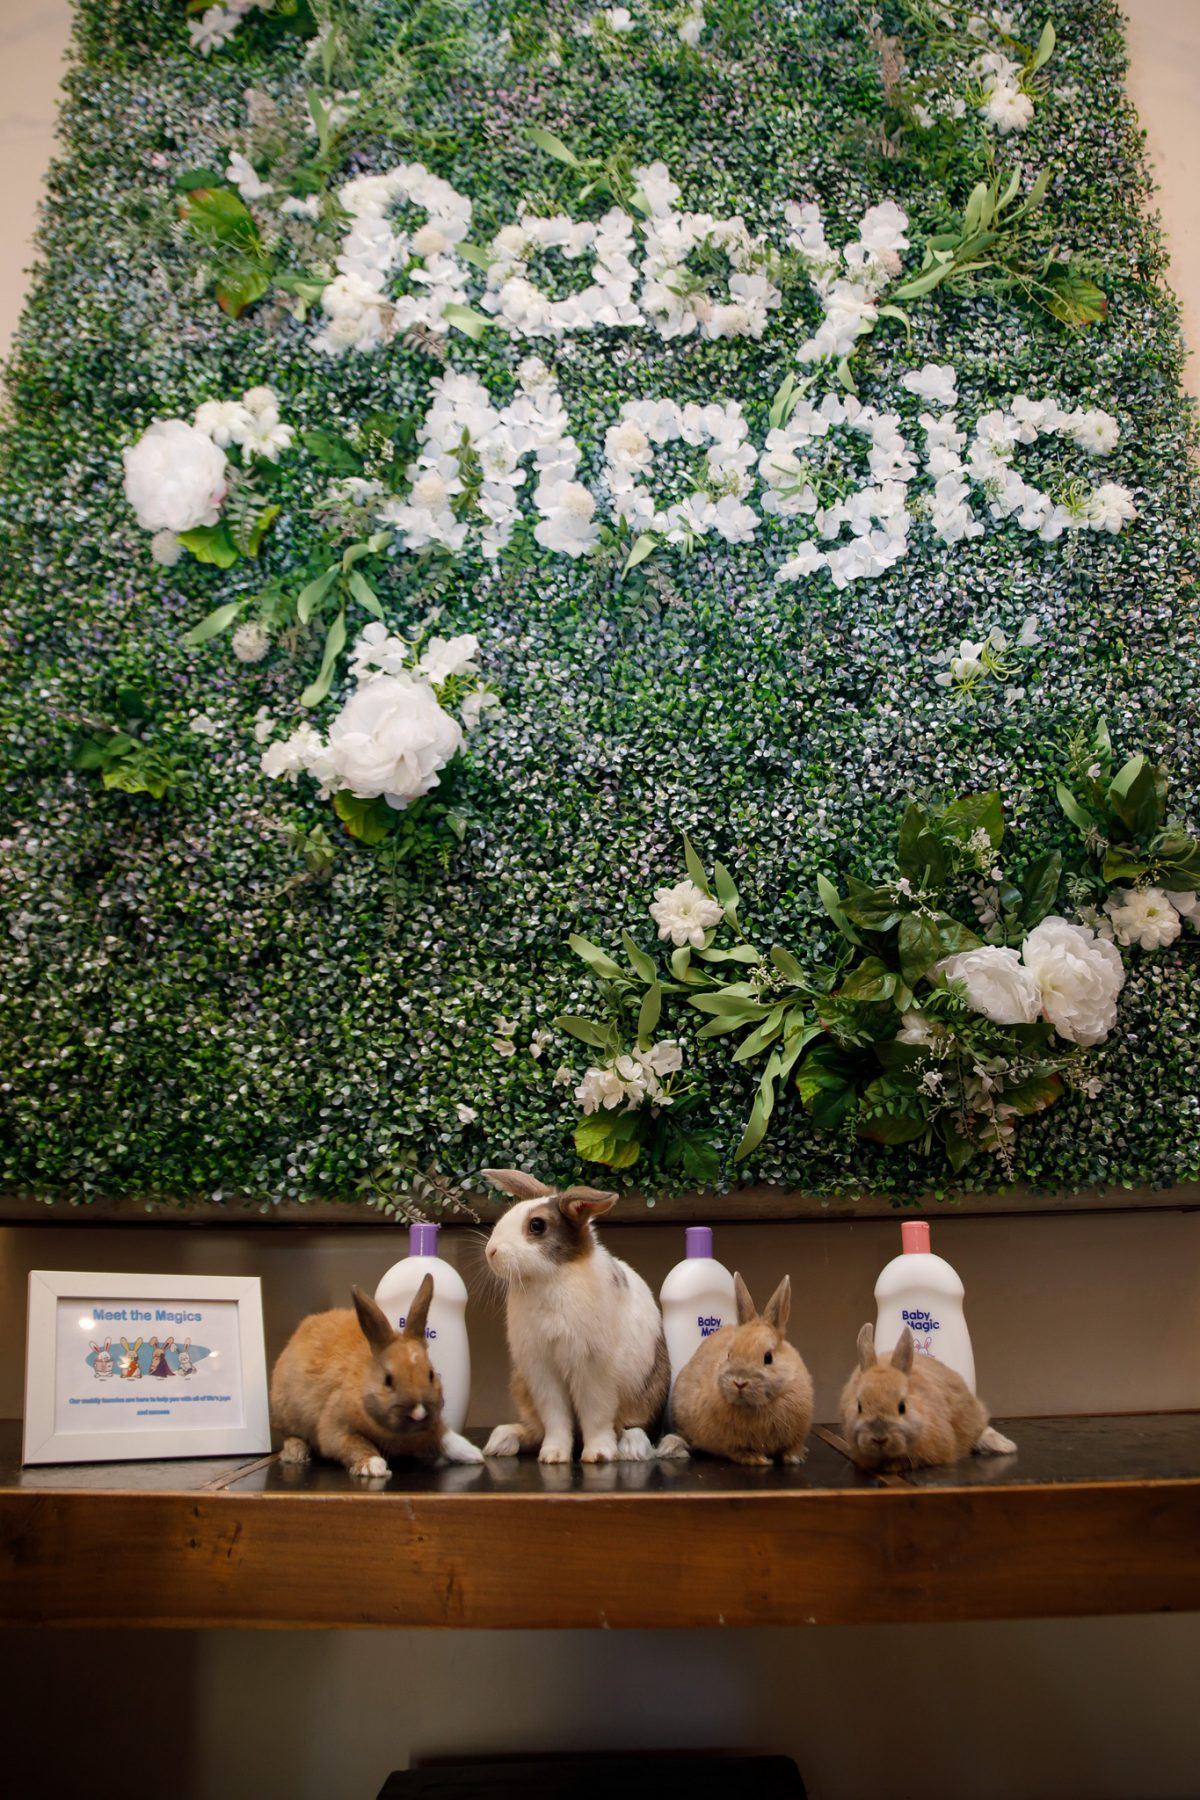 Bunnies standing on table under Baby Magic Floral Wall - Baby Magic launches a New Product Line with Wholesome Clean Ingredients by Caitlin Houston from Confessions of a Northern Belle